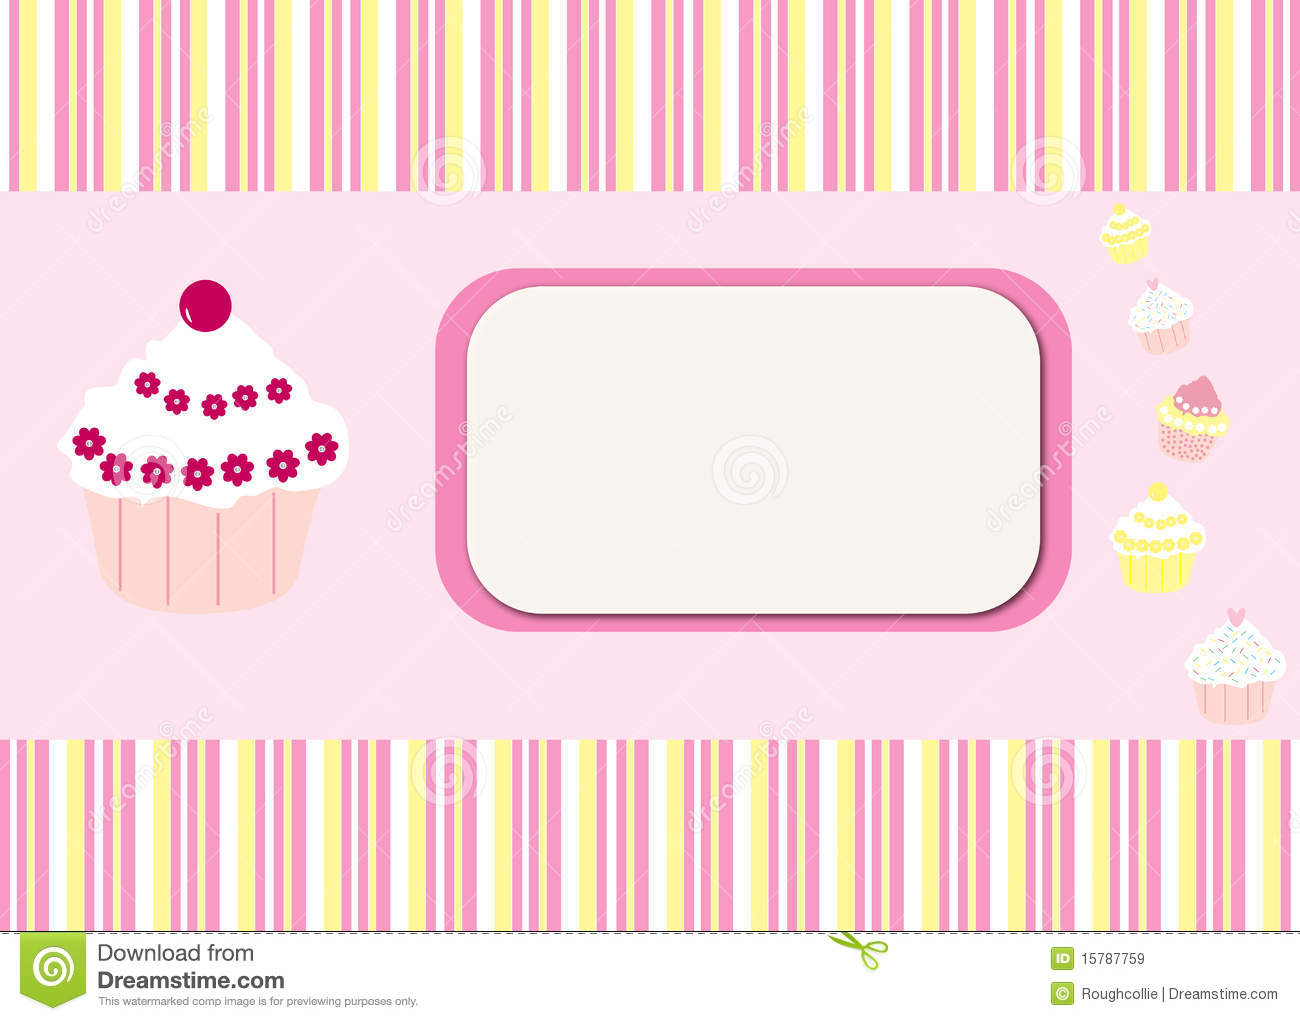 Cupcakes Stripes Card Background Stock Illustration